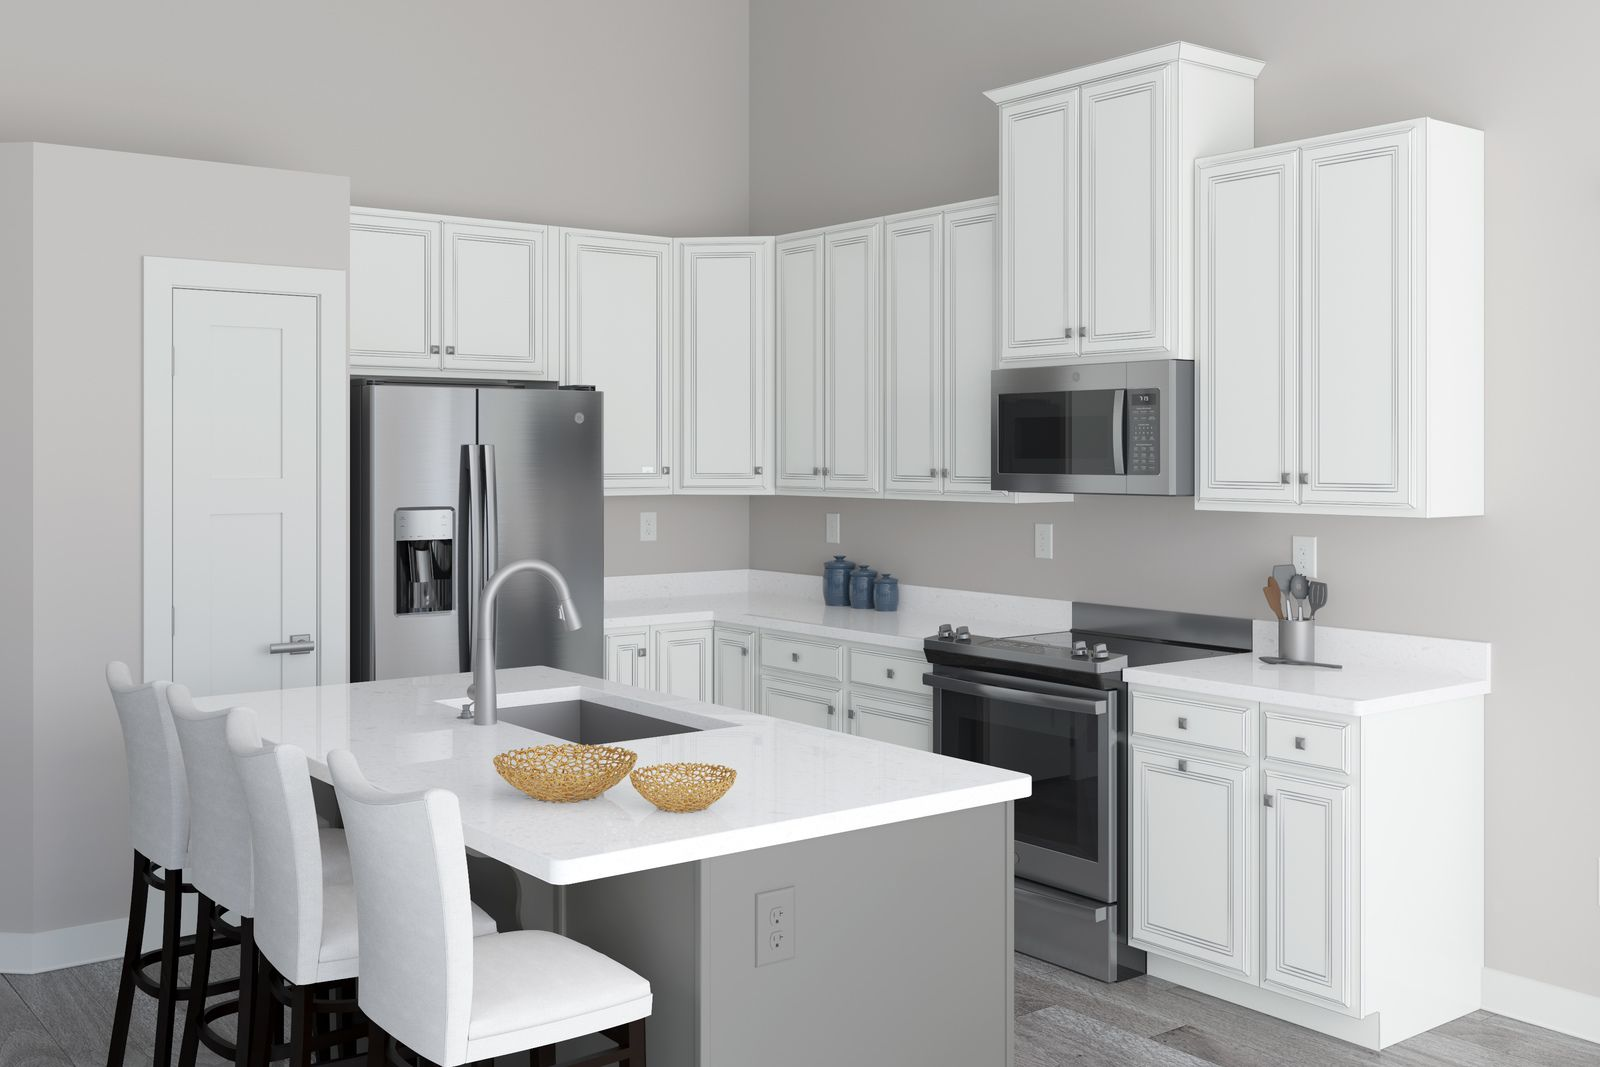 Kitchen featured in the Pisa Torre By Ryan Homes in Dayton-Springfield, OH